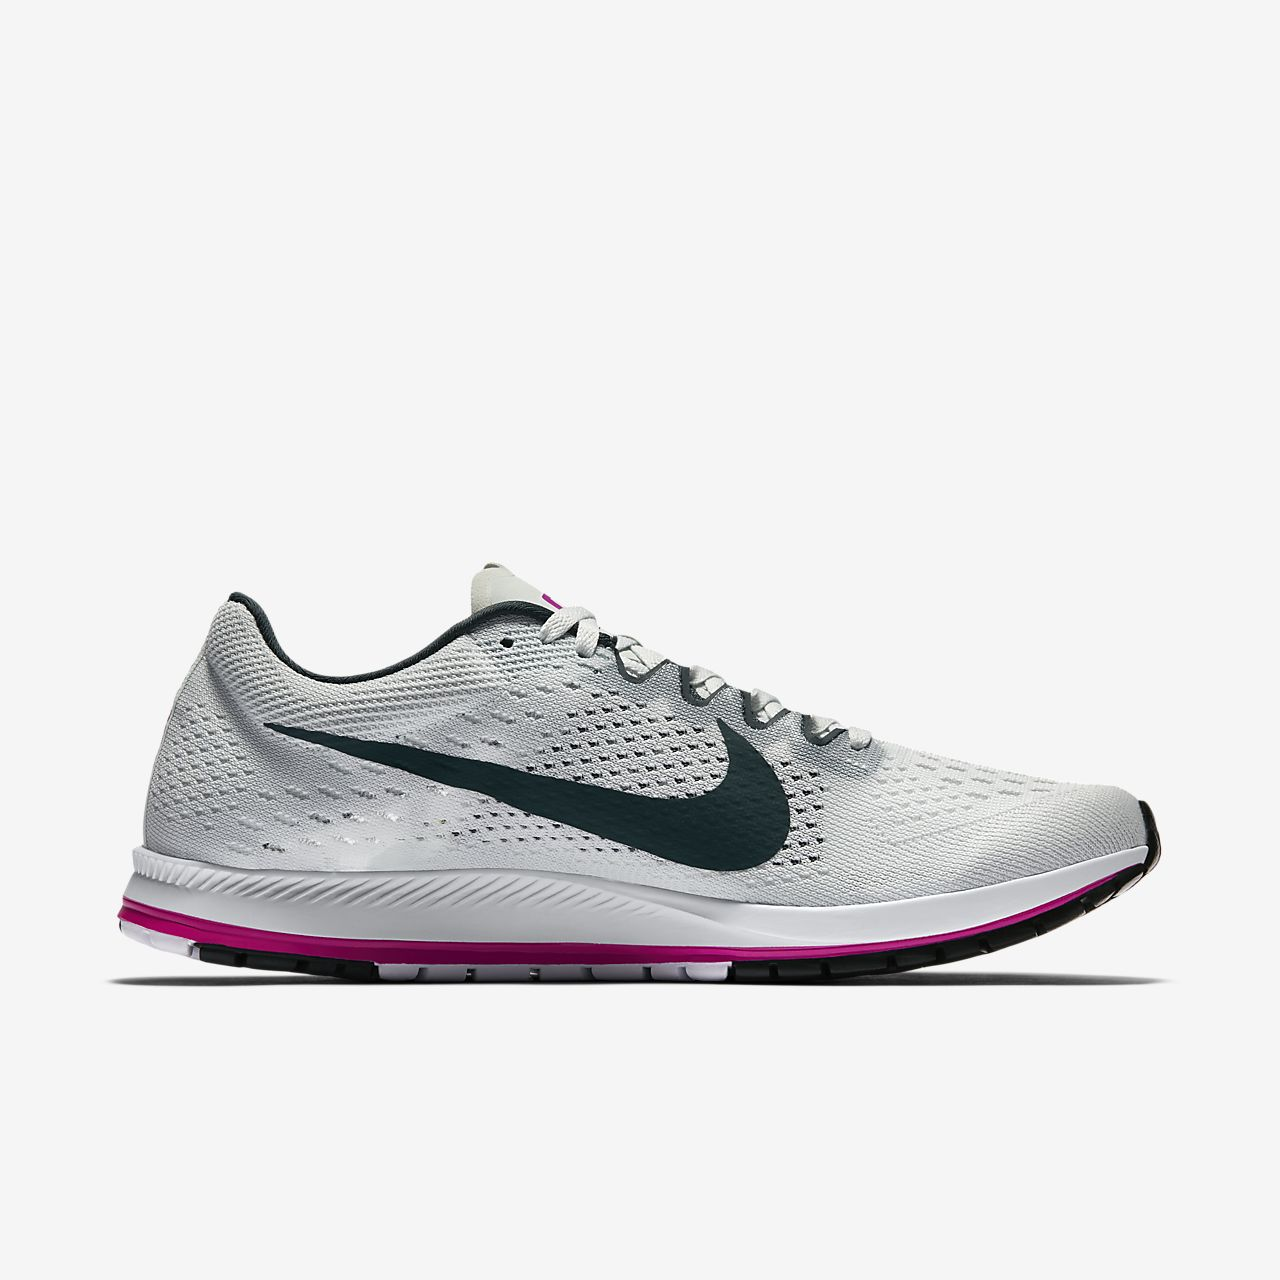 ... Nike Zoom Streak 6 Unisex Racing Shoe